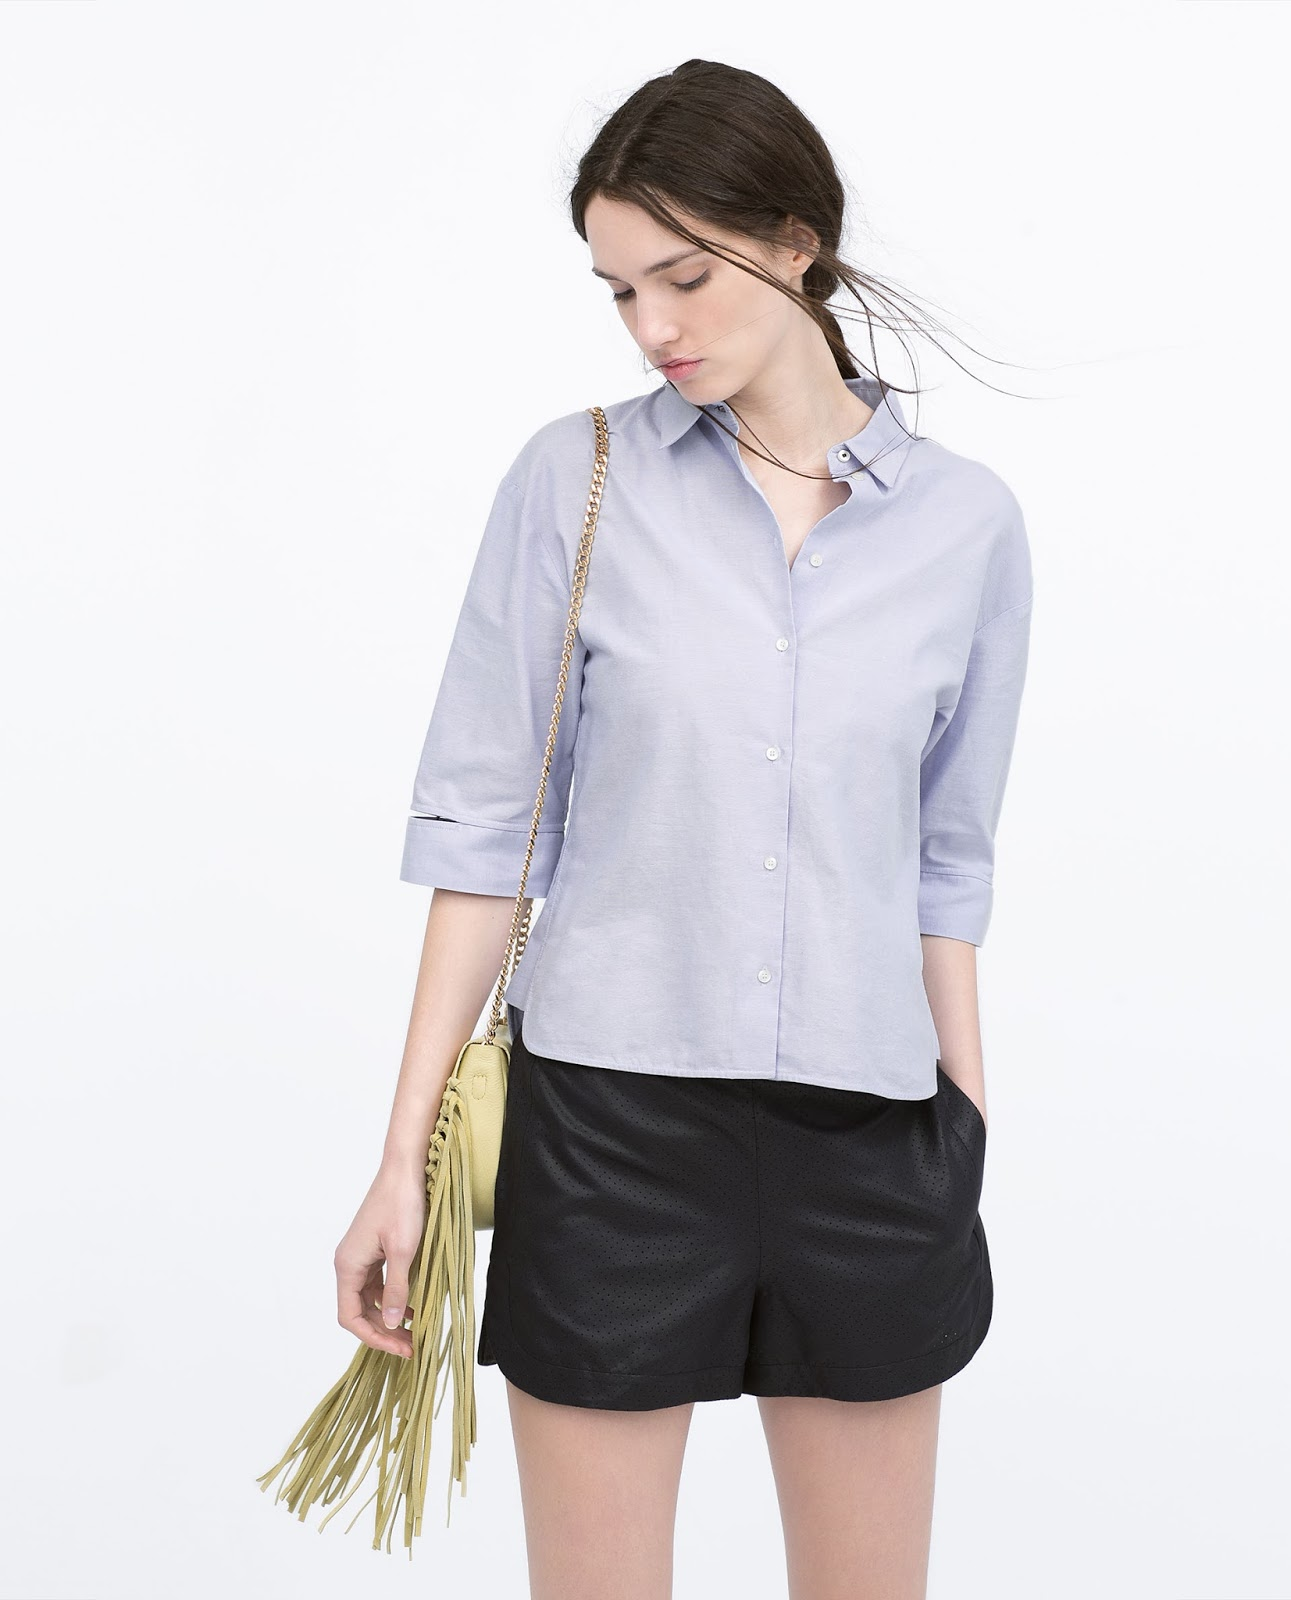 http://www.zara.com/?go=http%3A//www.zara.com/share/promotions/femme/collection/short-sport-similicuir-c761502p2465022.html#utm_referrer=https%3A%2F%2Fwww.google.be